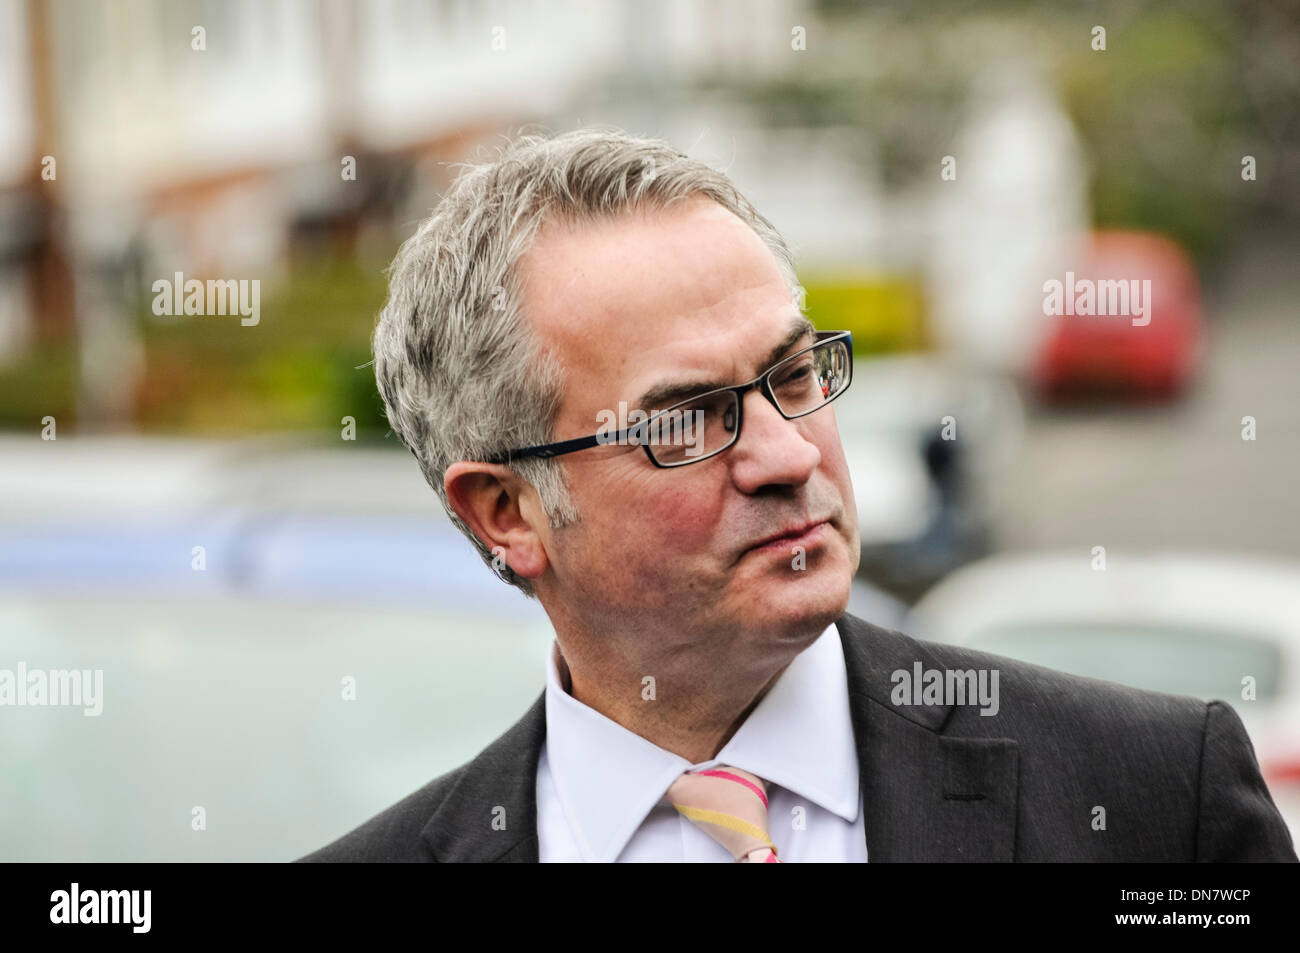 Belfast, Northern Ireland. 19 Dec 2013 - Alex Attwood from the SDLP arrives for the Haass talks over the Northern Ireland issues for the future. Credit:  Stephen Barnes/Alamy Live News - Stock Image